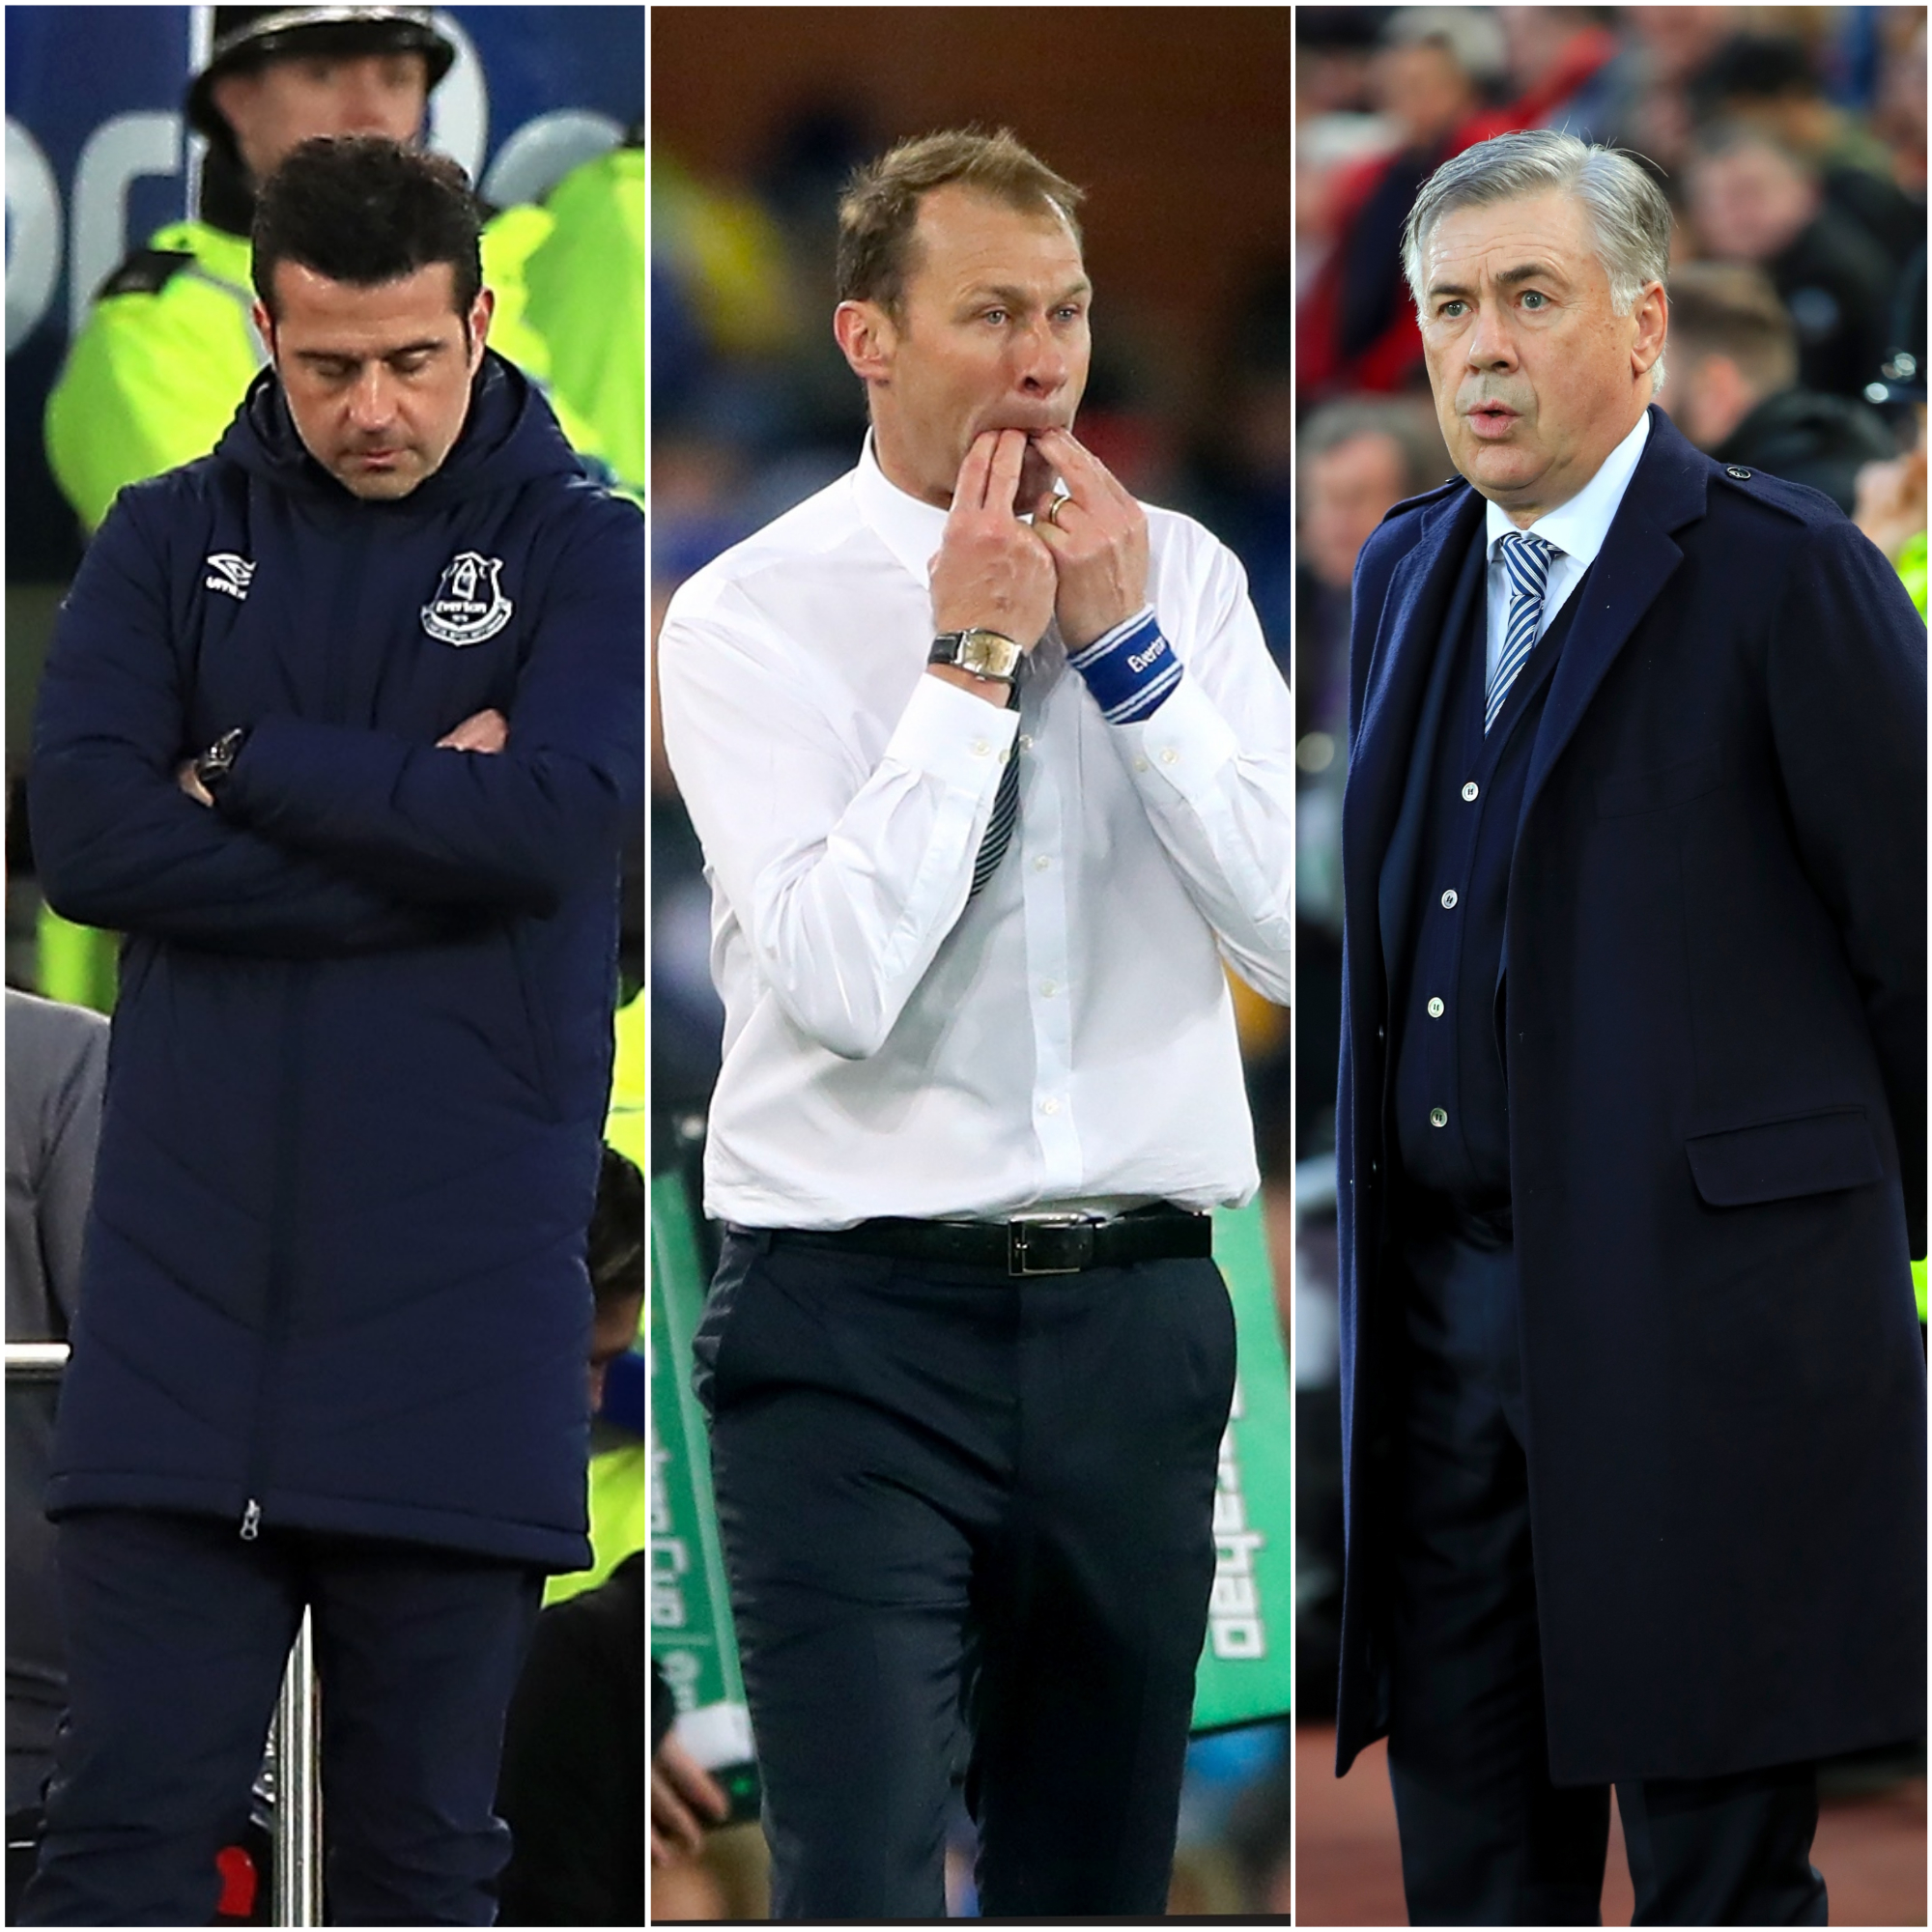 Everton have had three managers in the last month: Marco Silva, Duncan Ferguson and Carlo Ancelotti